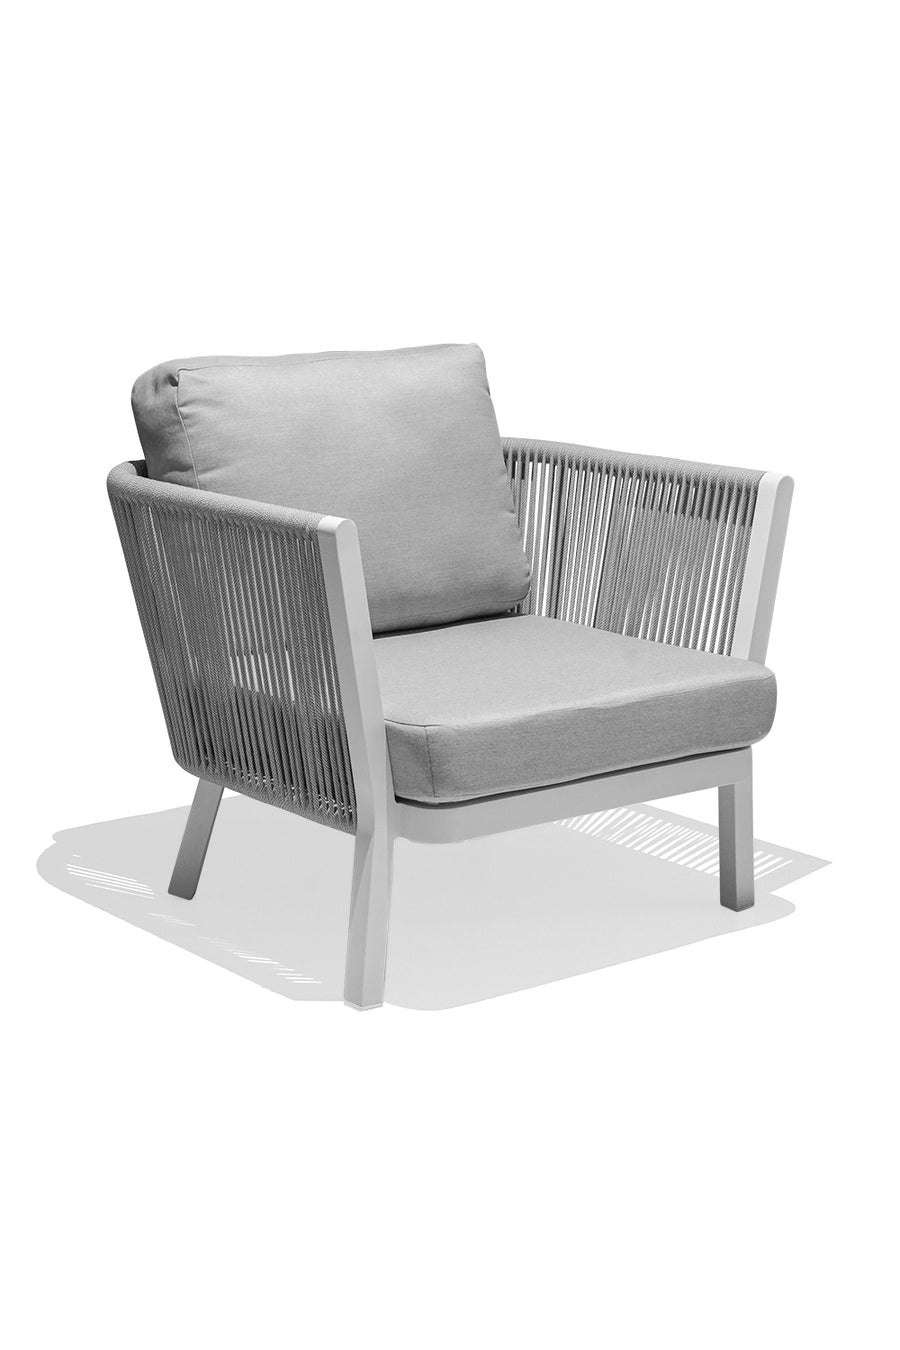 SOFIA sofa chair